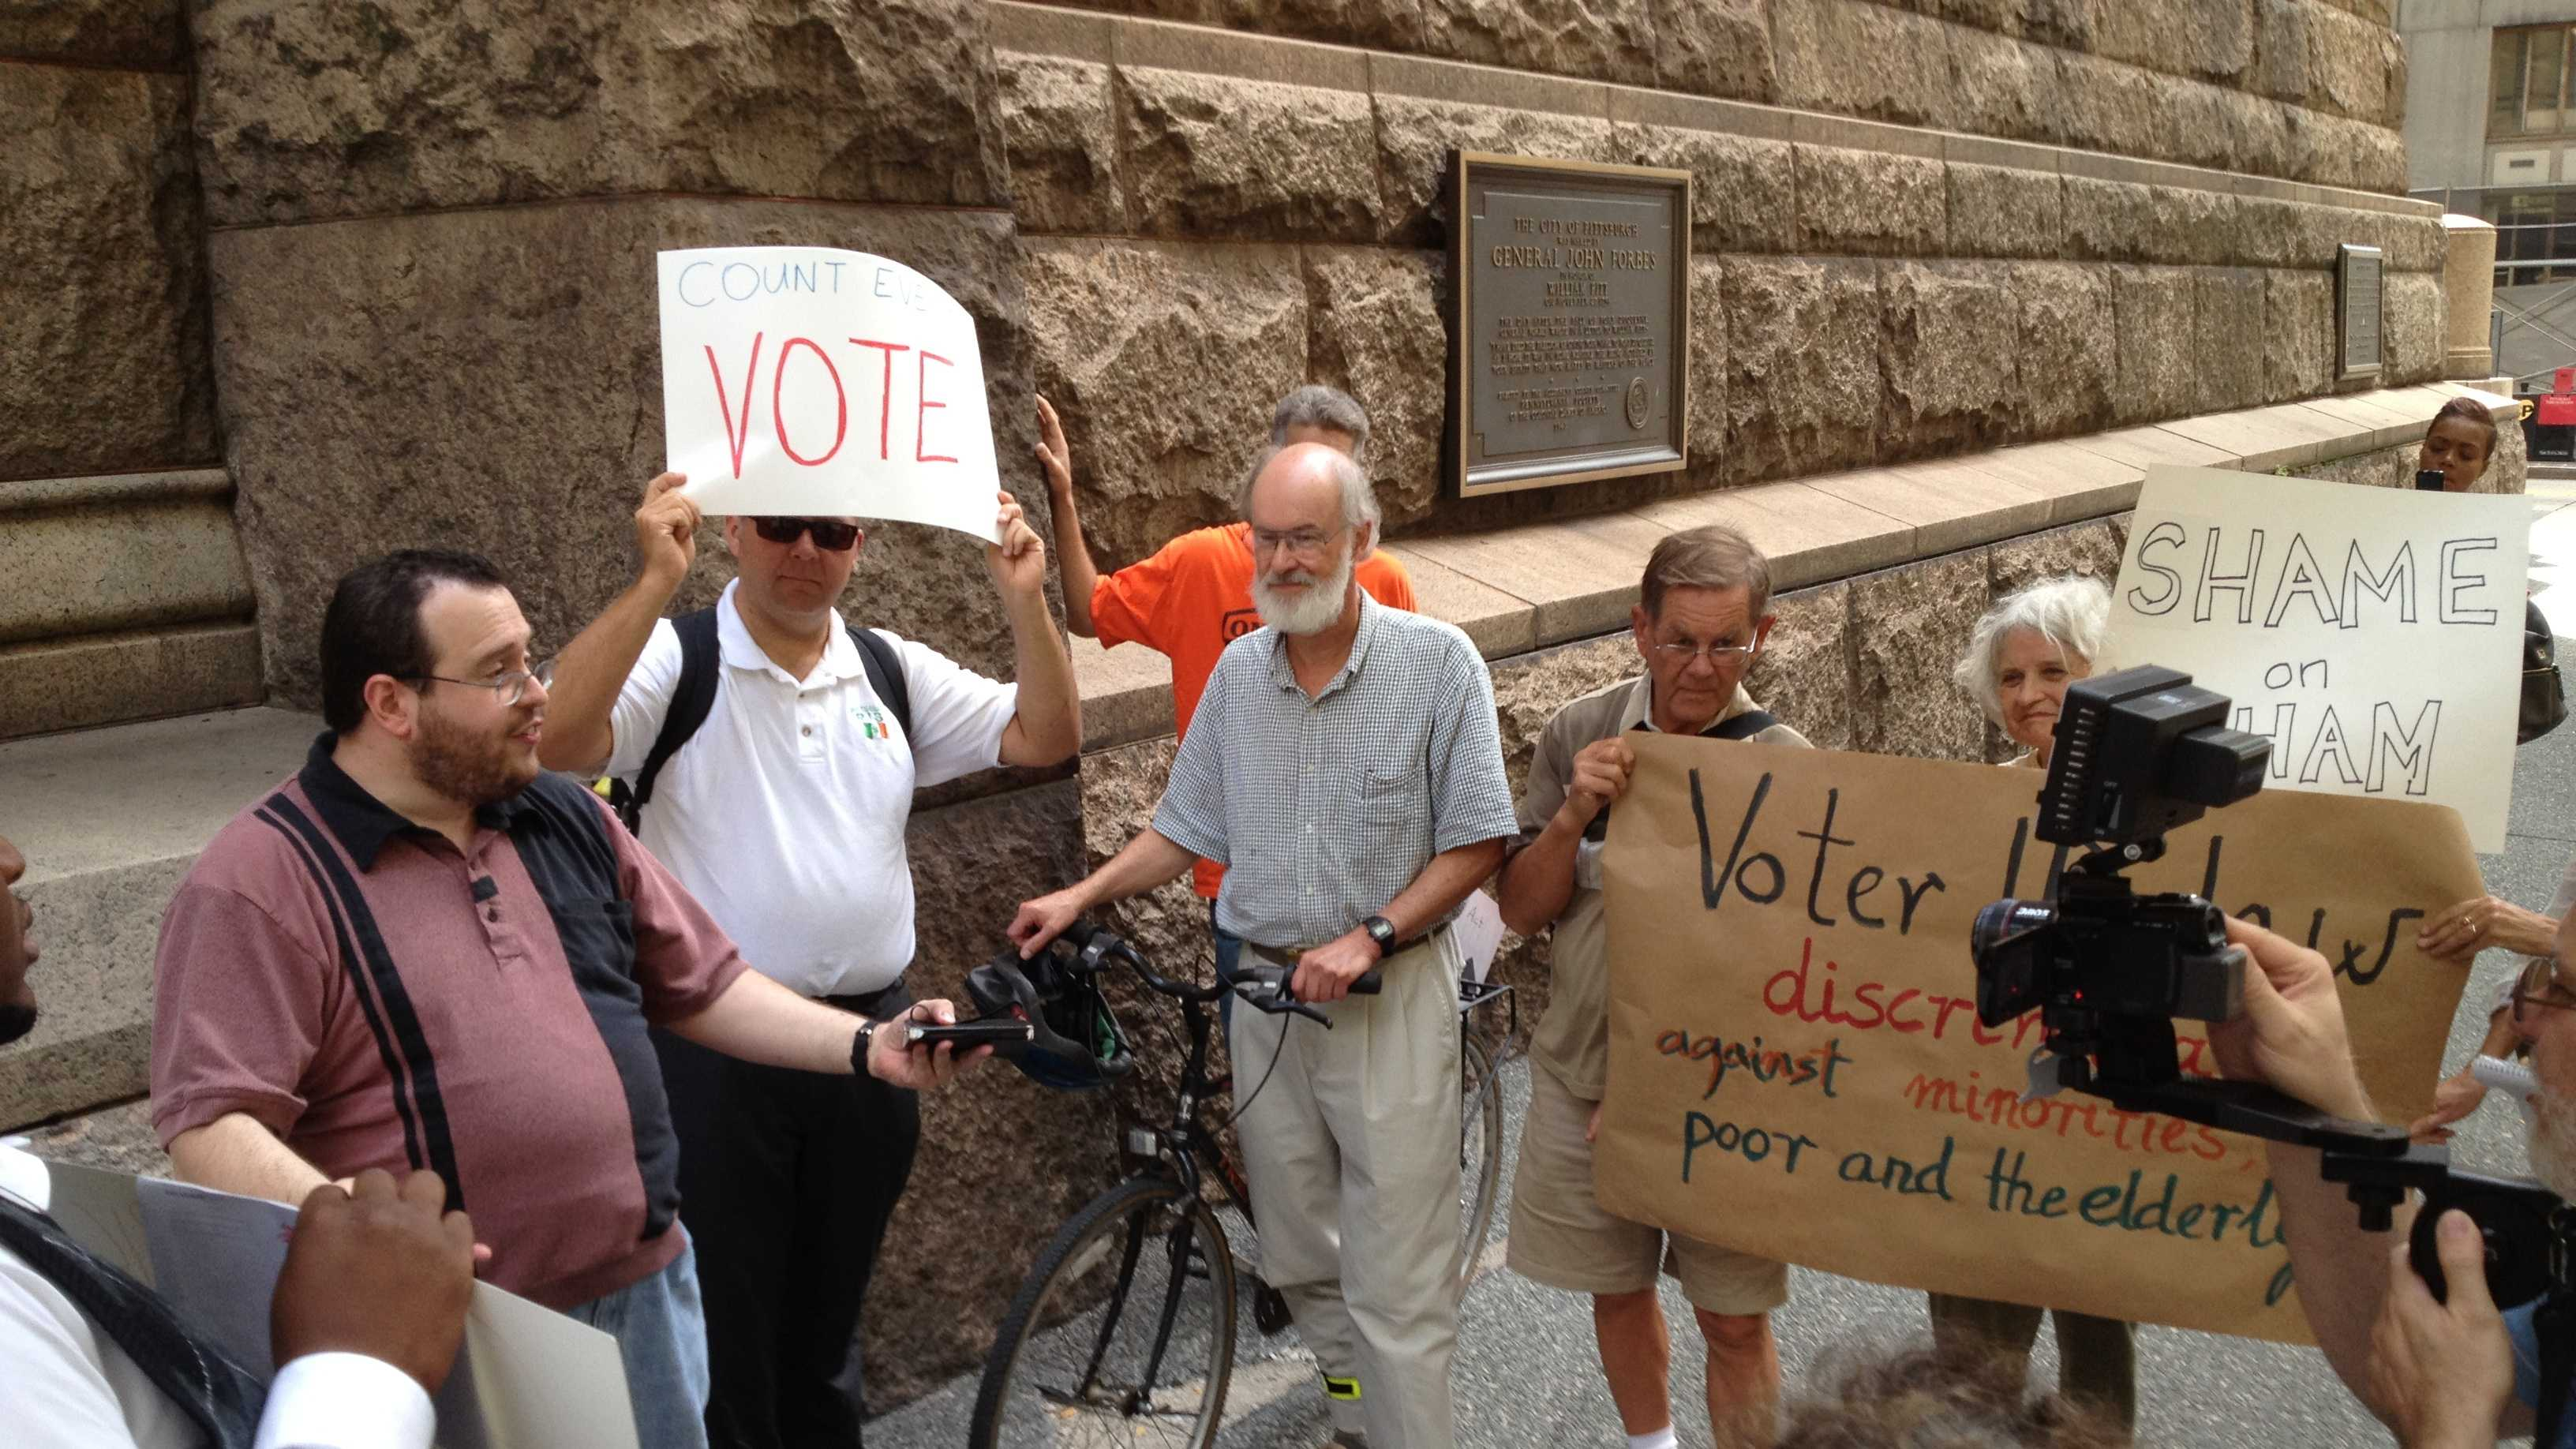 Voter ID rally